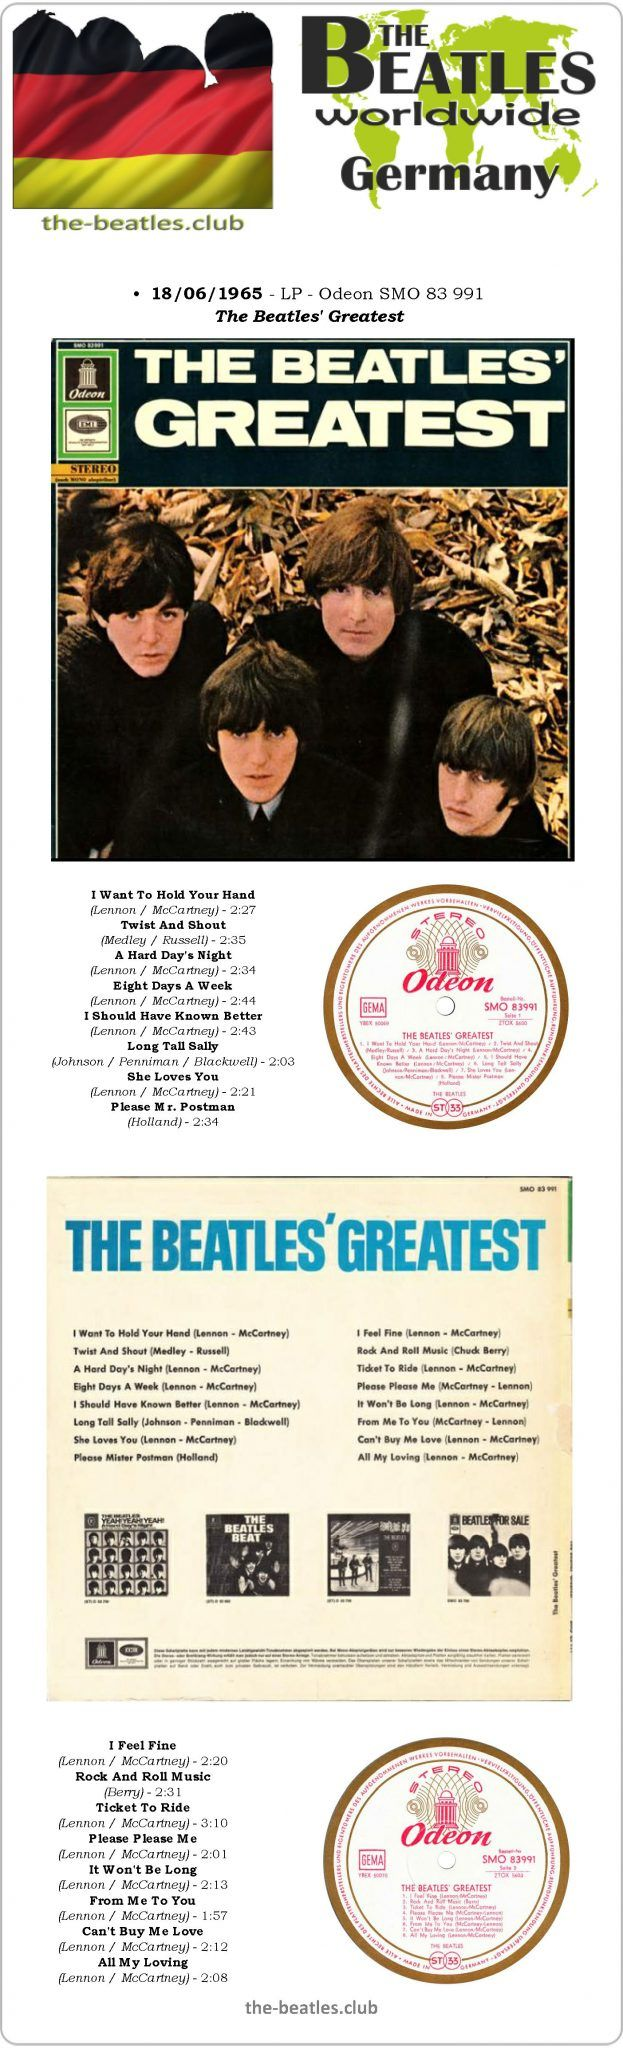 The Beatles Germany LP Odeon SMO 83 991 The Beatles' Greatest Vinyl Record Long Play Discography